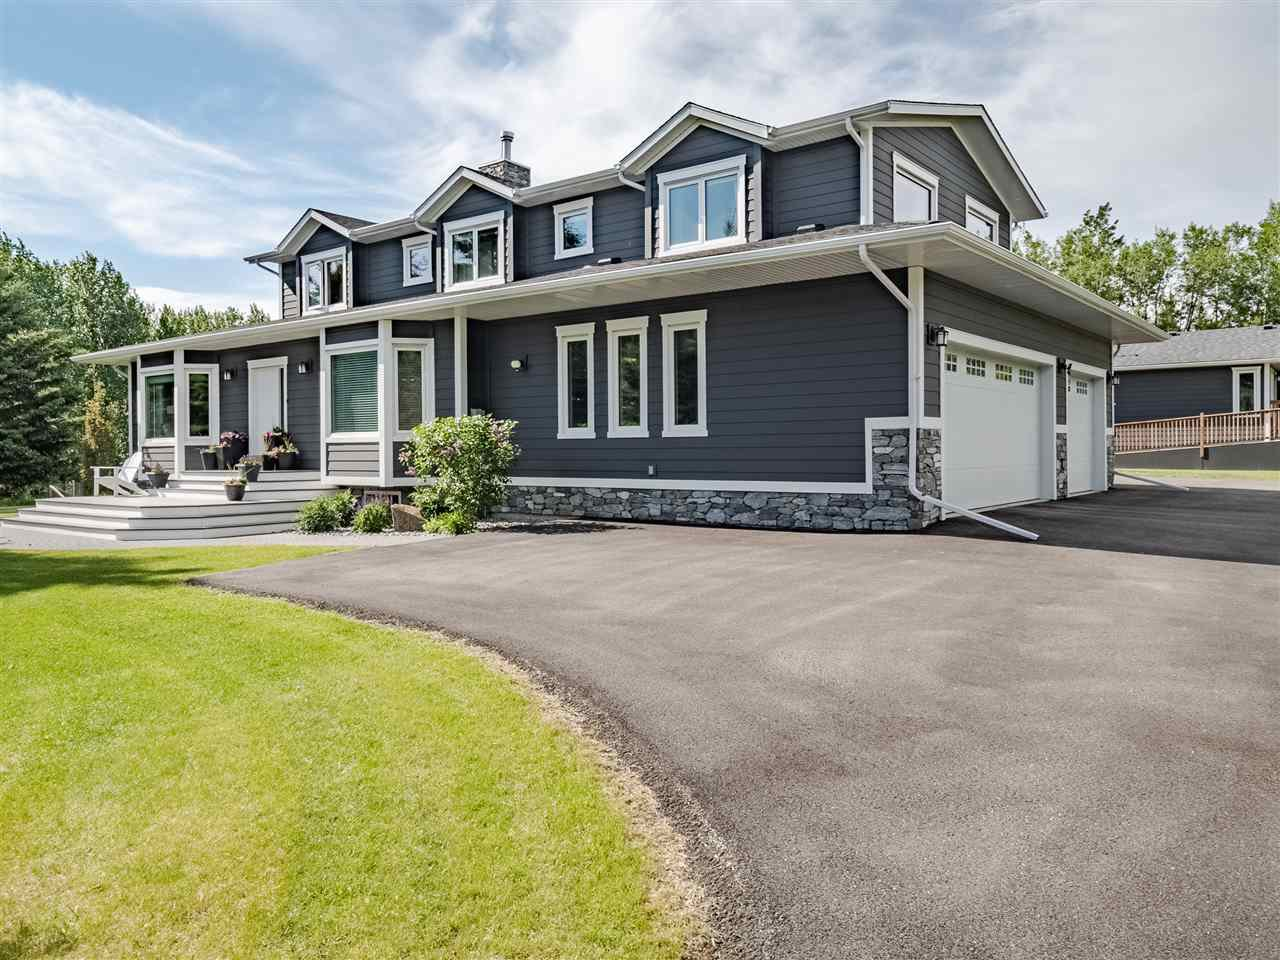 Main Photo: 182 52514 RGE RD 223: Rural Strathcona County House for sale : MLS®# E4200700